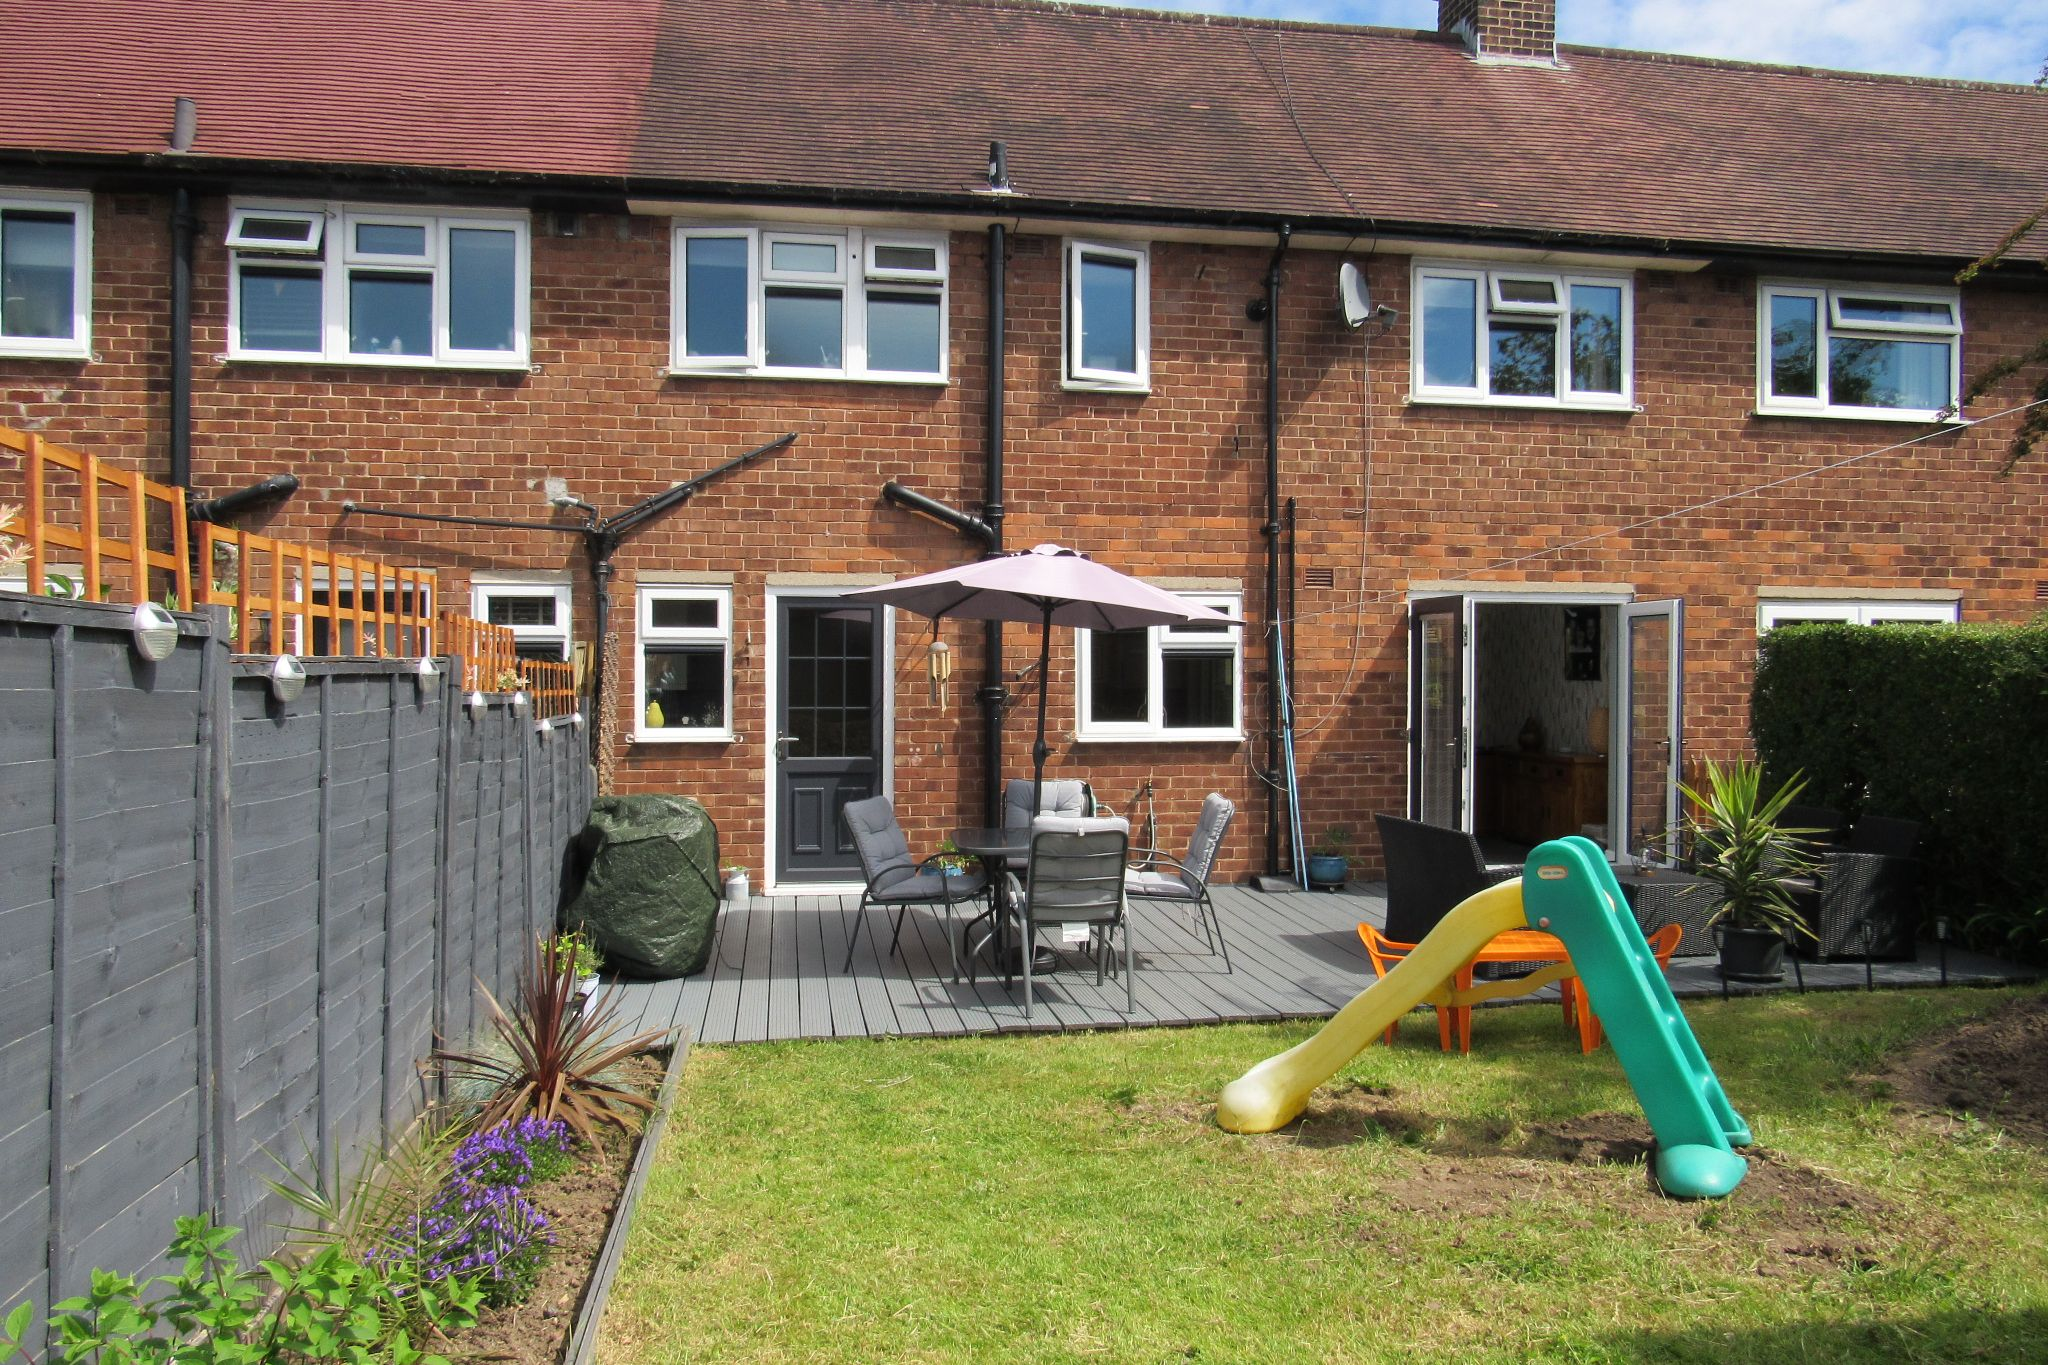 3 bedroom mid terraced house SSTC in Altrincham - Photograph 25.